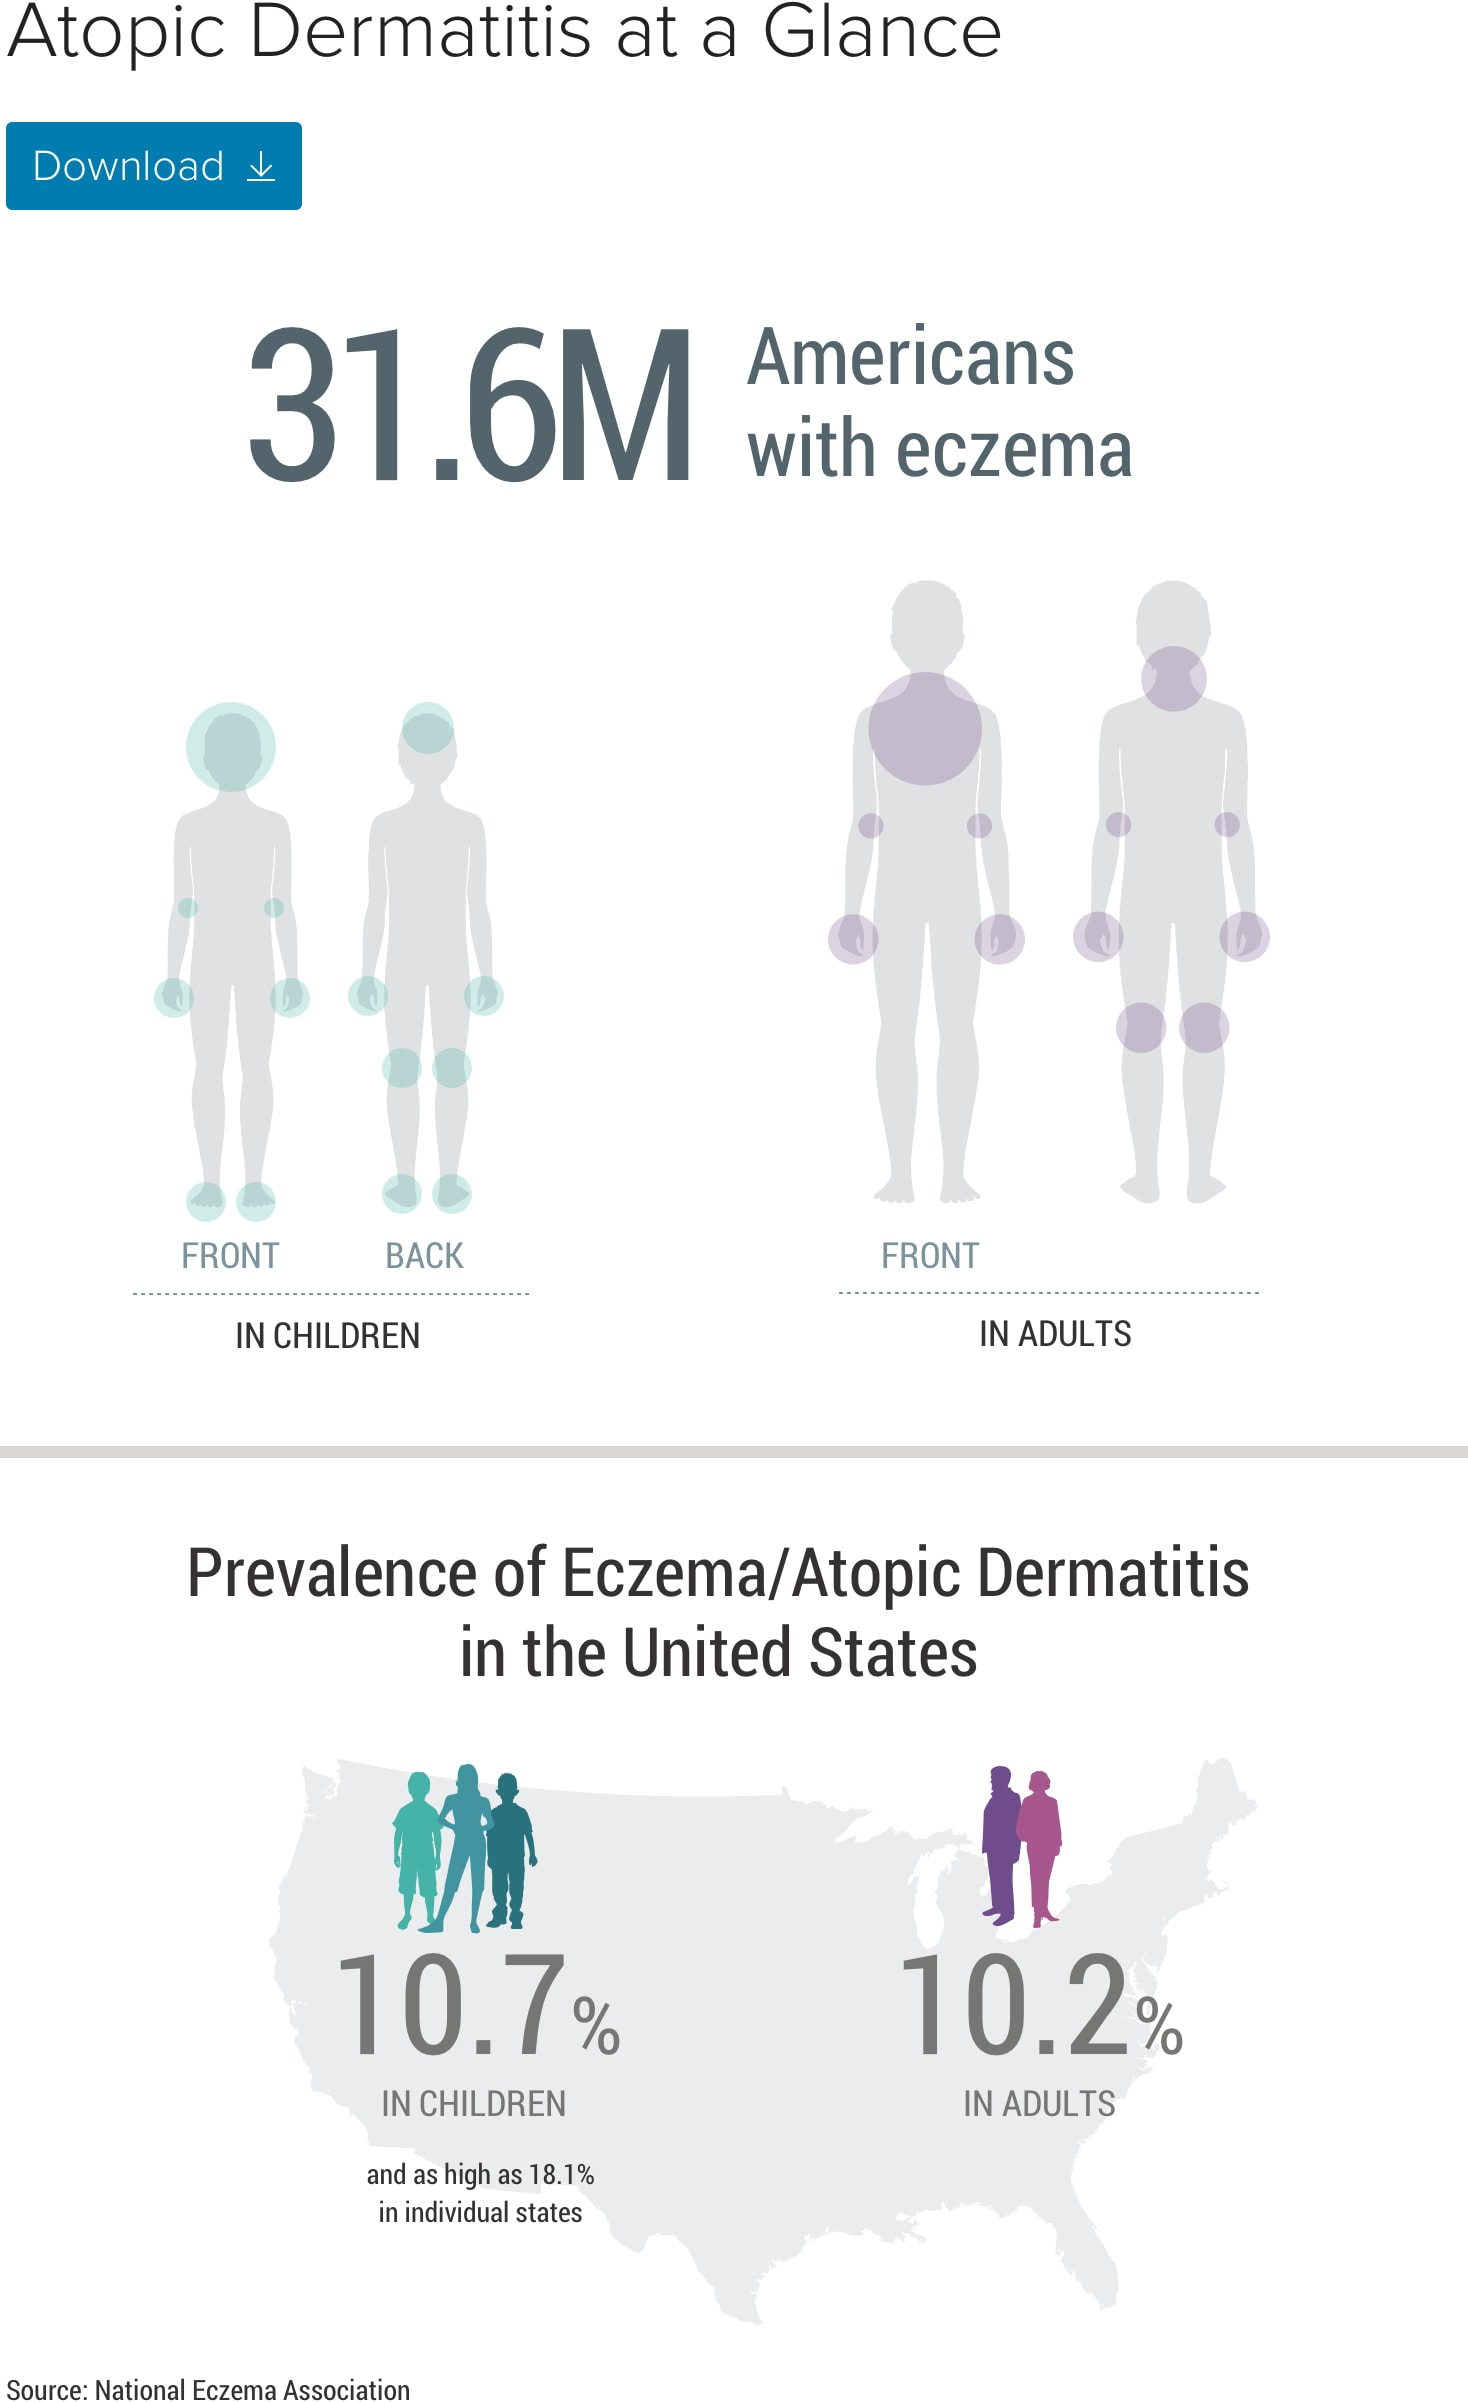 pictures of atopic dermatitis in adults